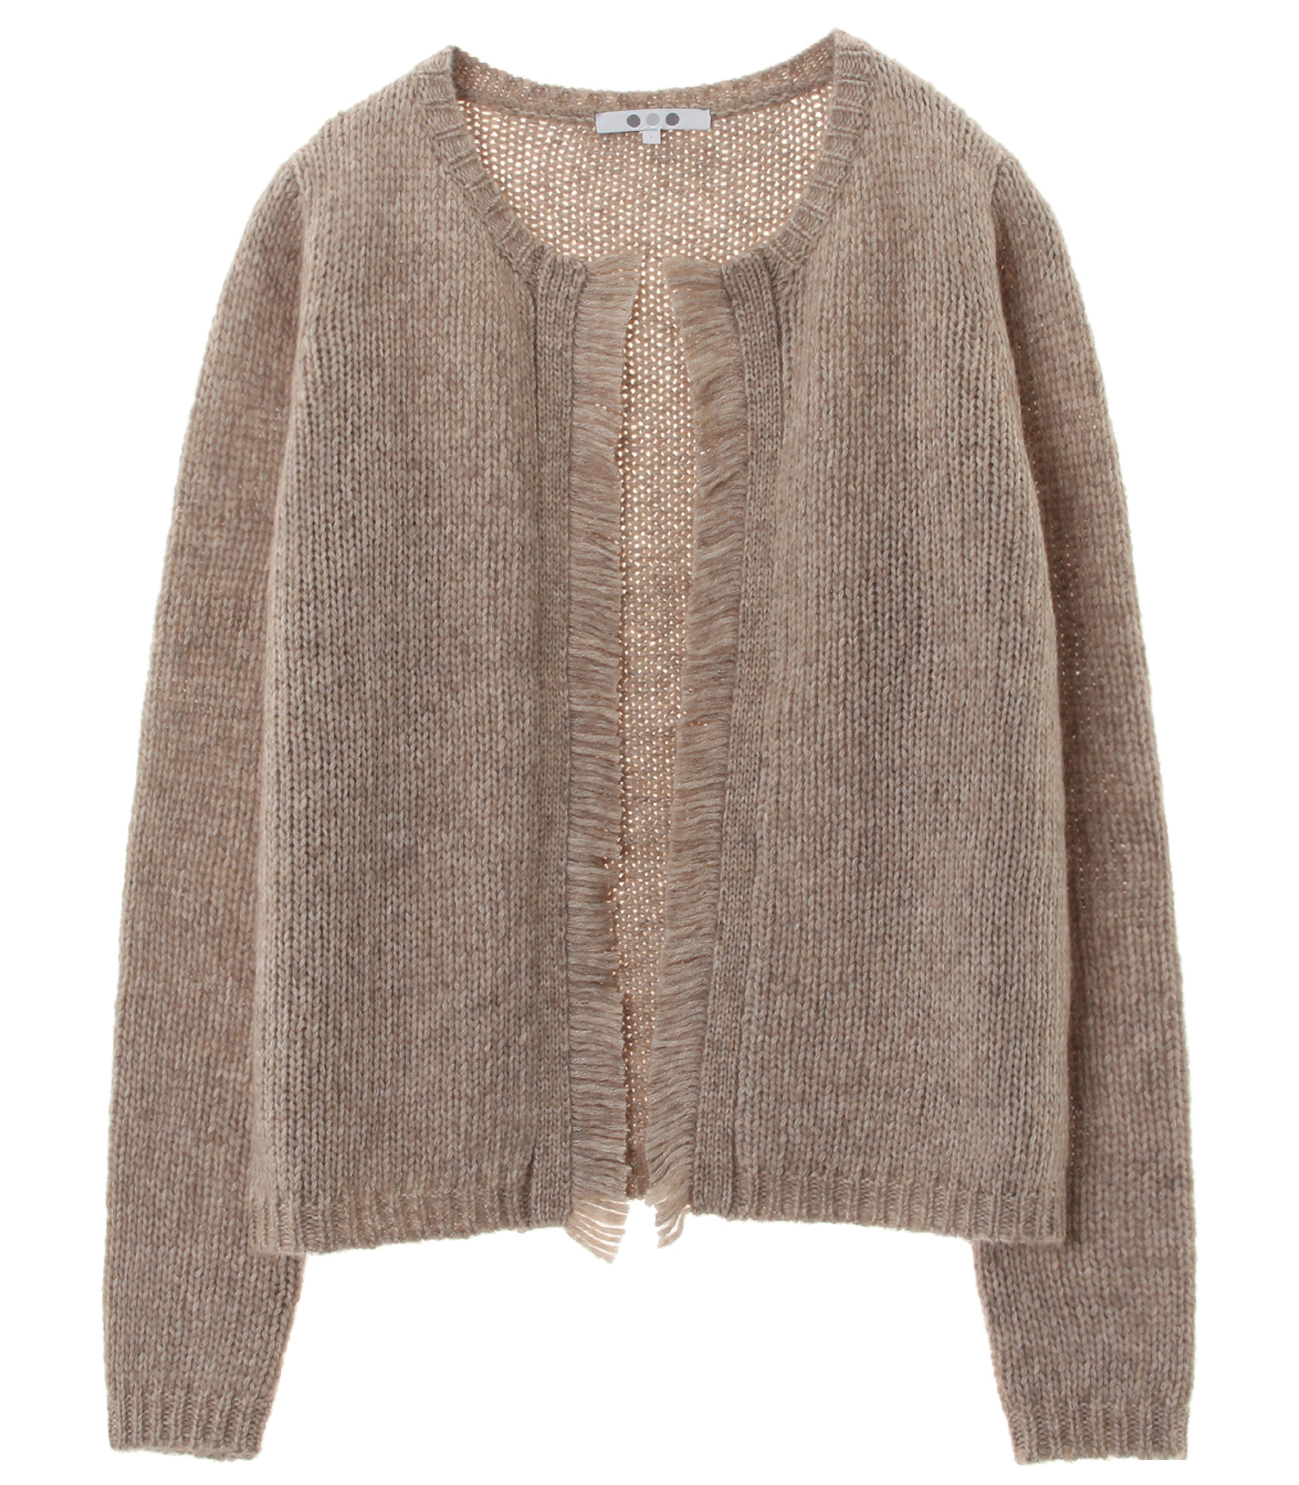 tweedy sweater l/s cardigan 詳細画像 beige 1